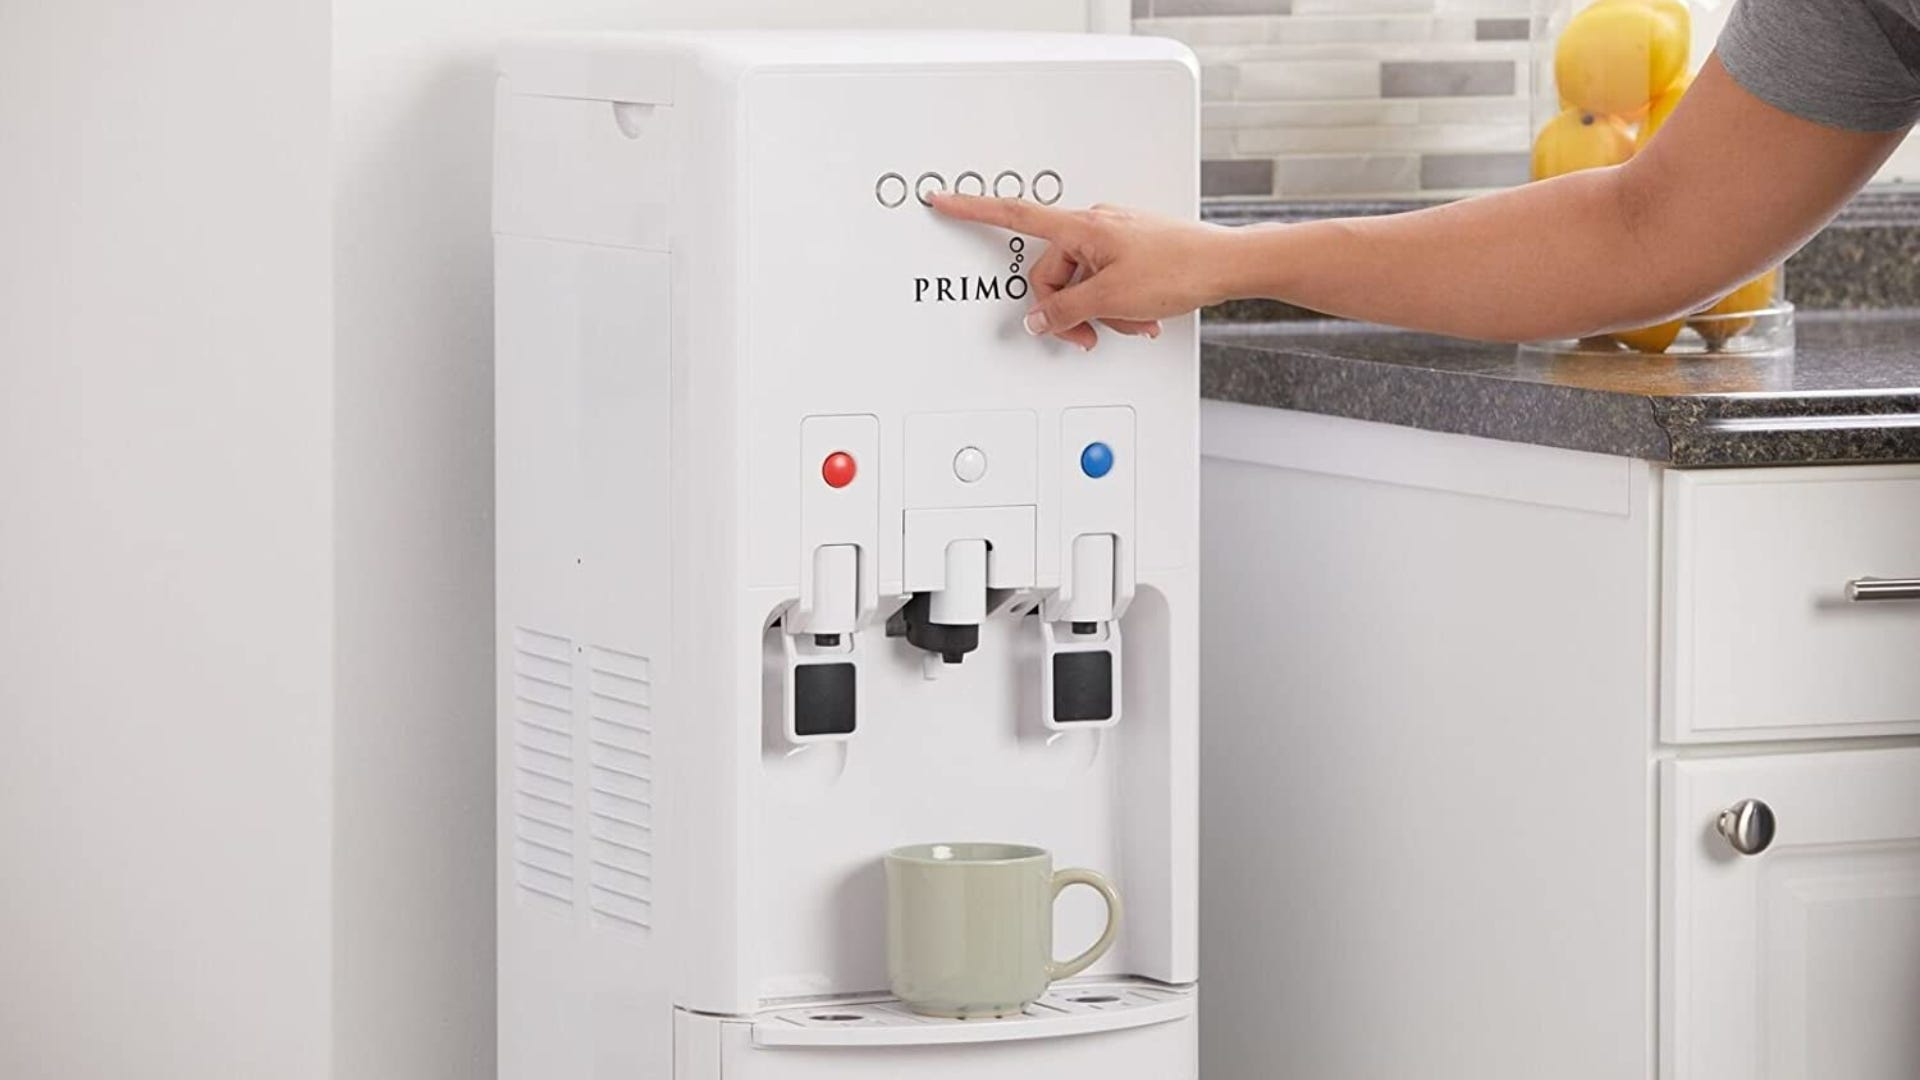 A person pushing a button on a white water cooler to dispense liquid into a mug.